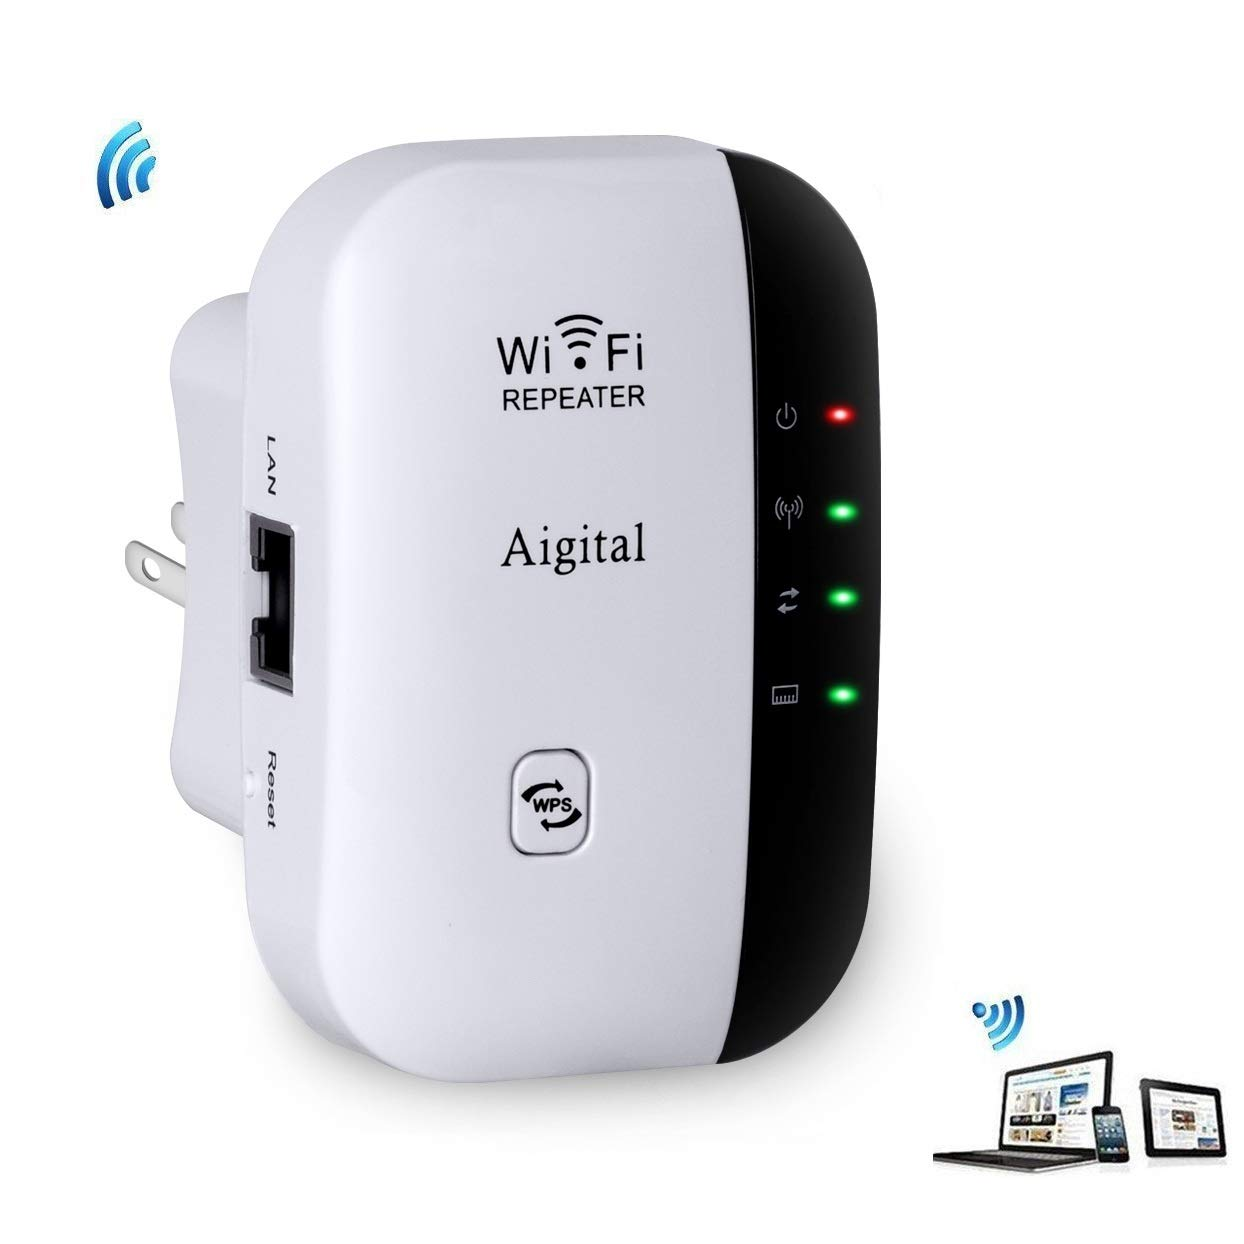 WiFi Extender Upgraded Aigital 300Mbps Wireless Repeater 2.4G Network Signal Booster Expand WiFi Range to Full Coverage, Easy Setup Wi-Fi Blast Adapter with WPS Function